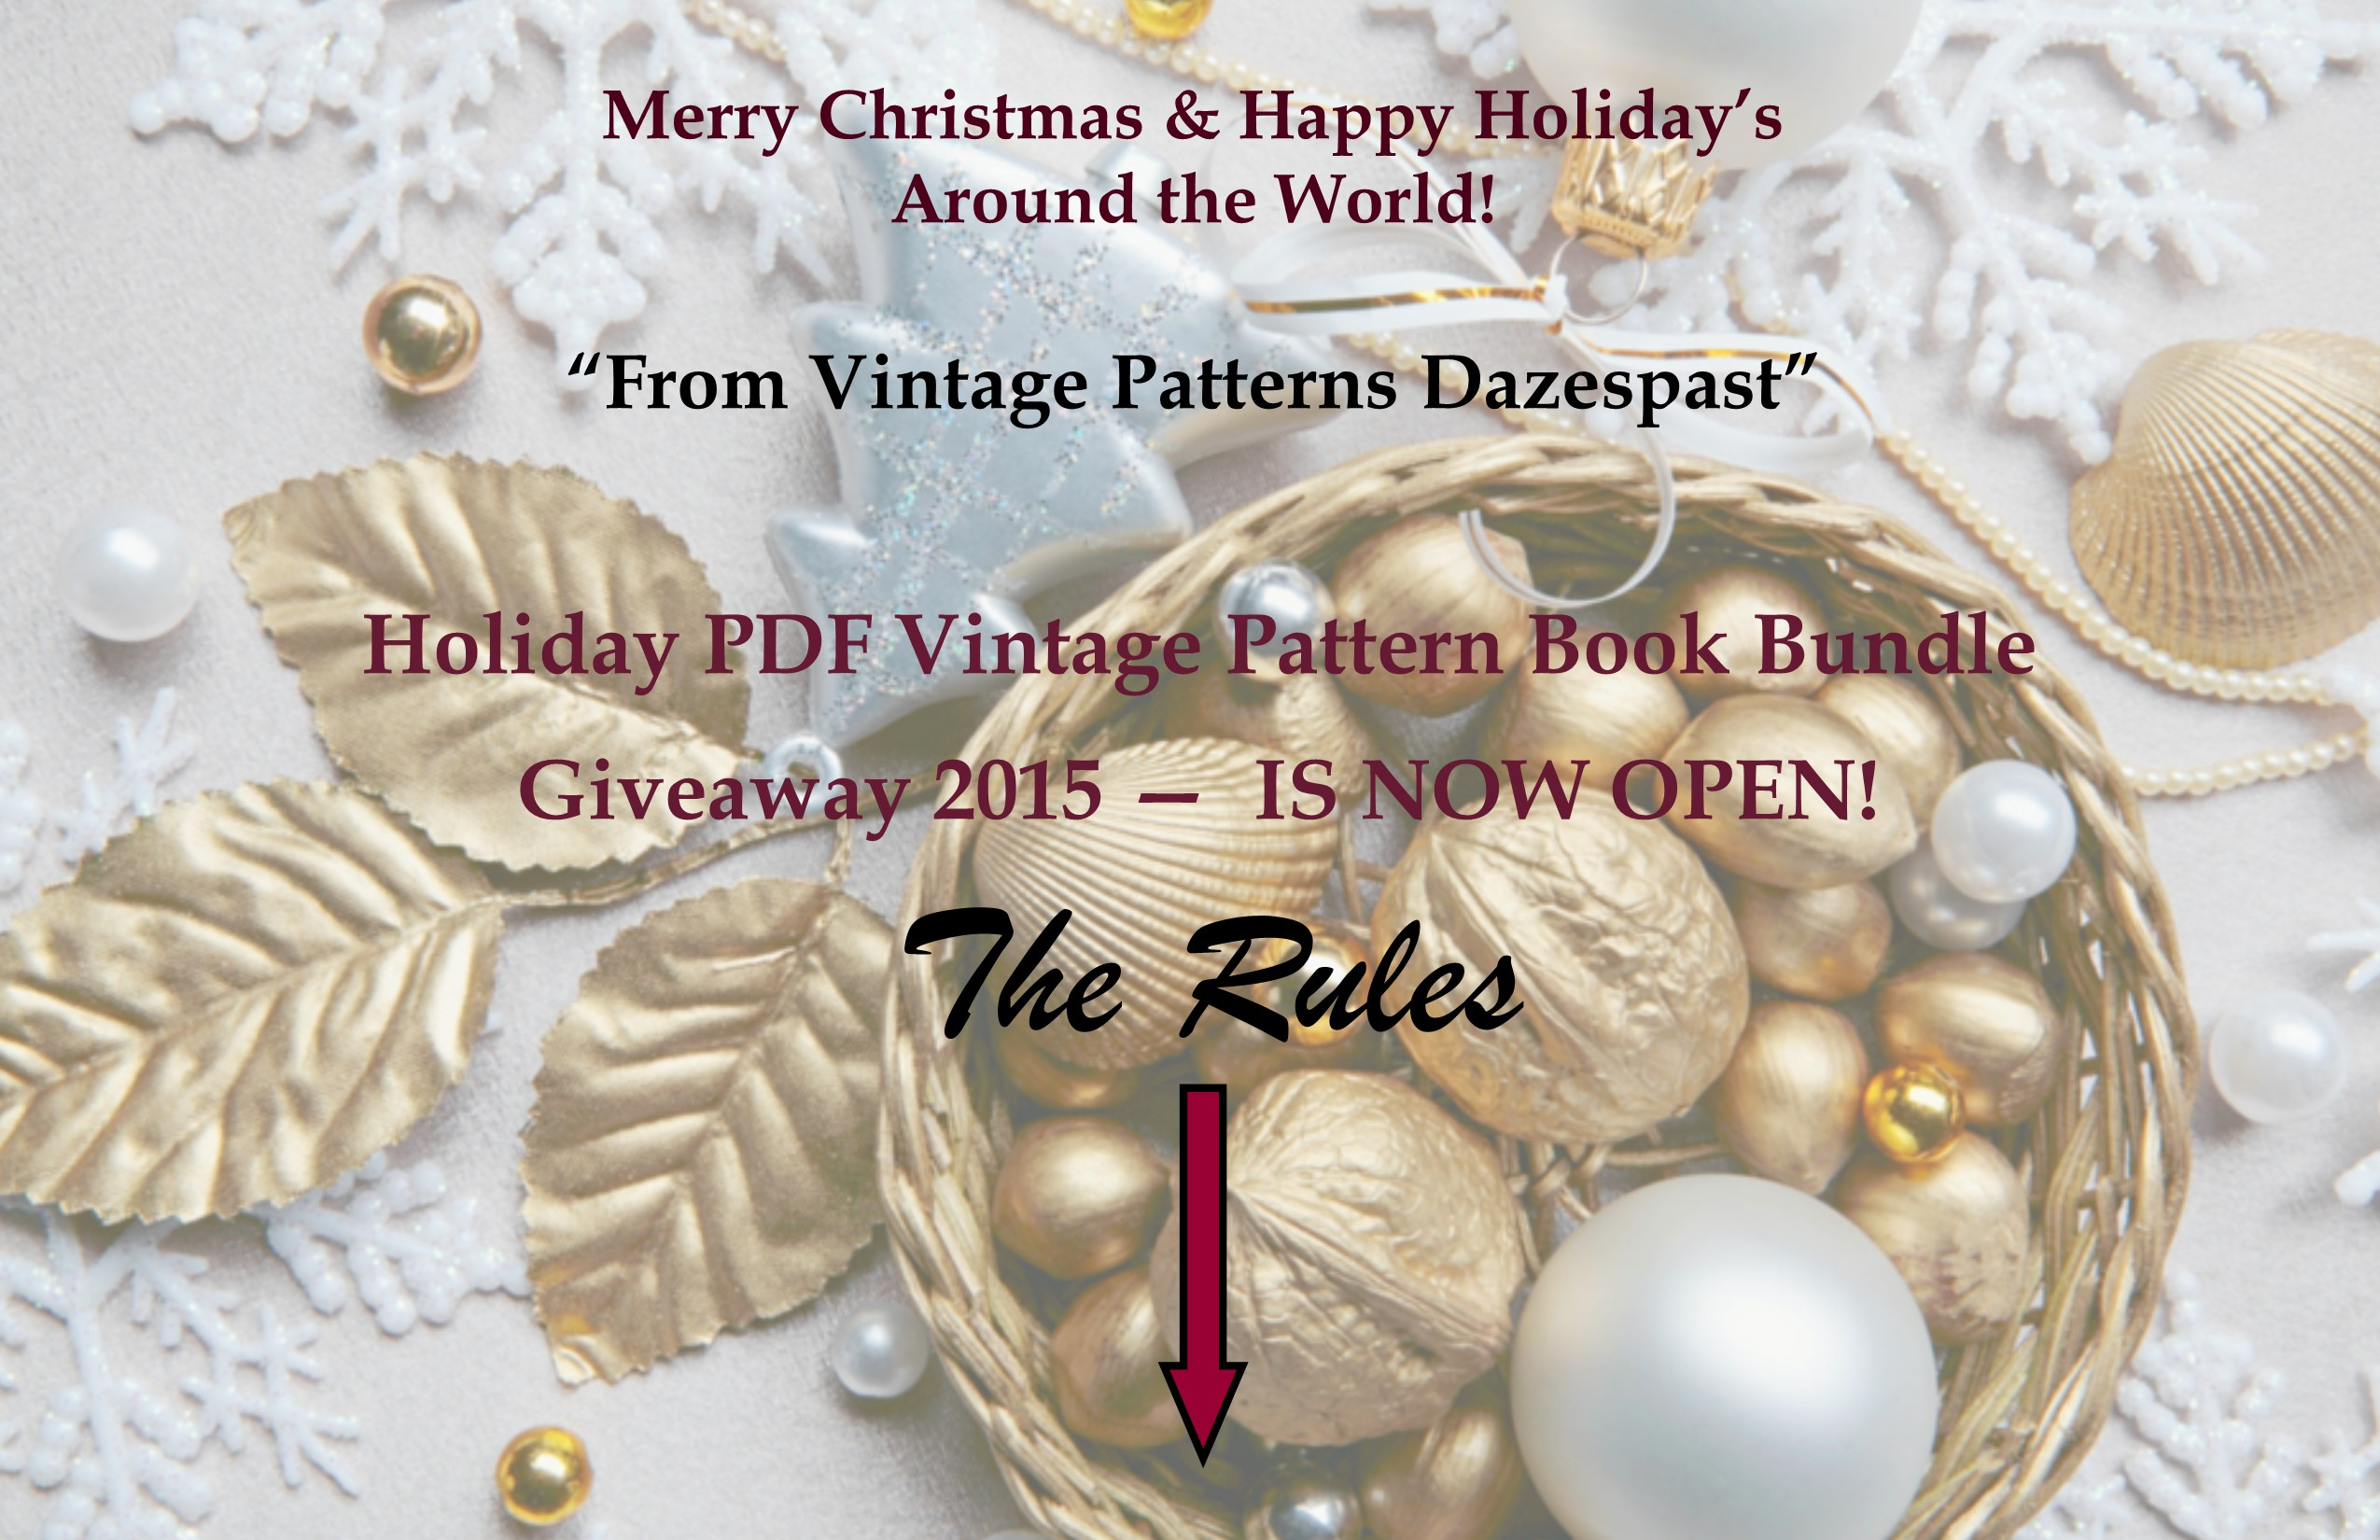 Holiday PDF Vintage Pattern Book Giveaway 2015 NOW OPEN